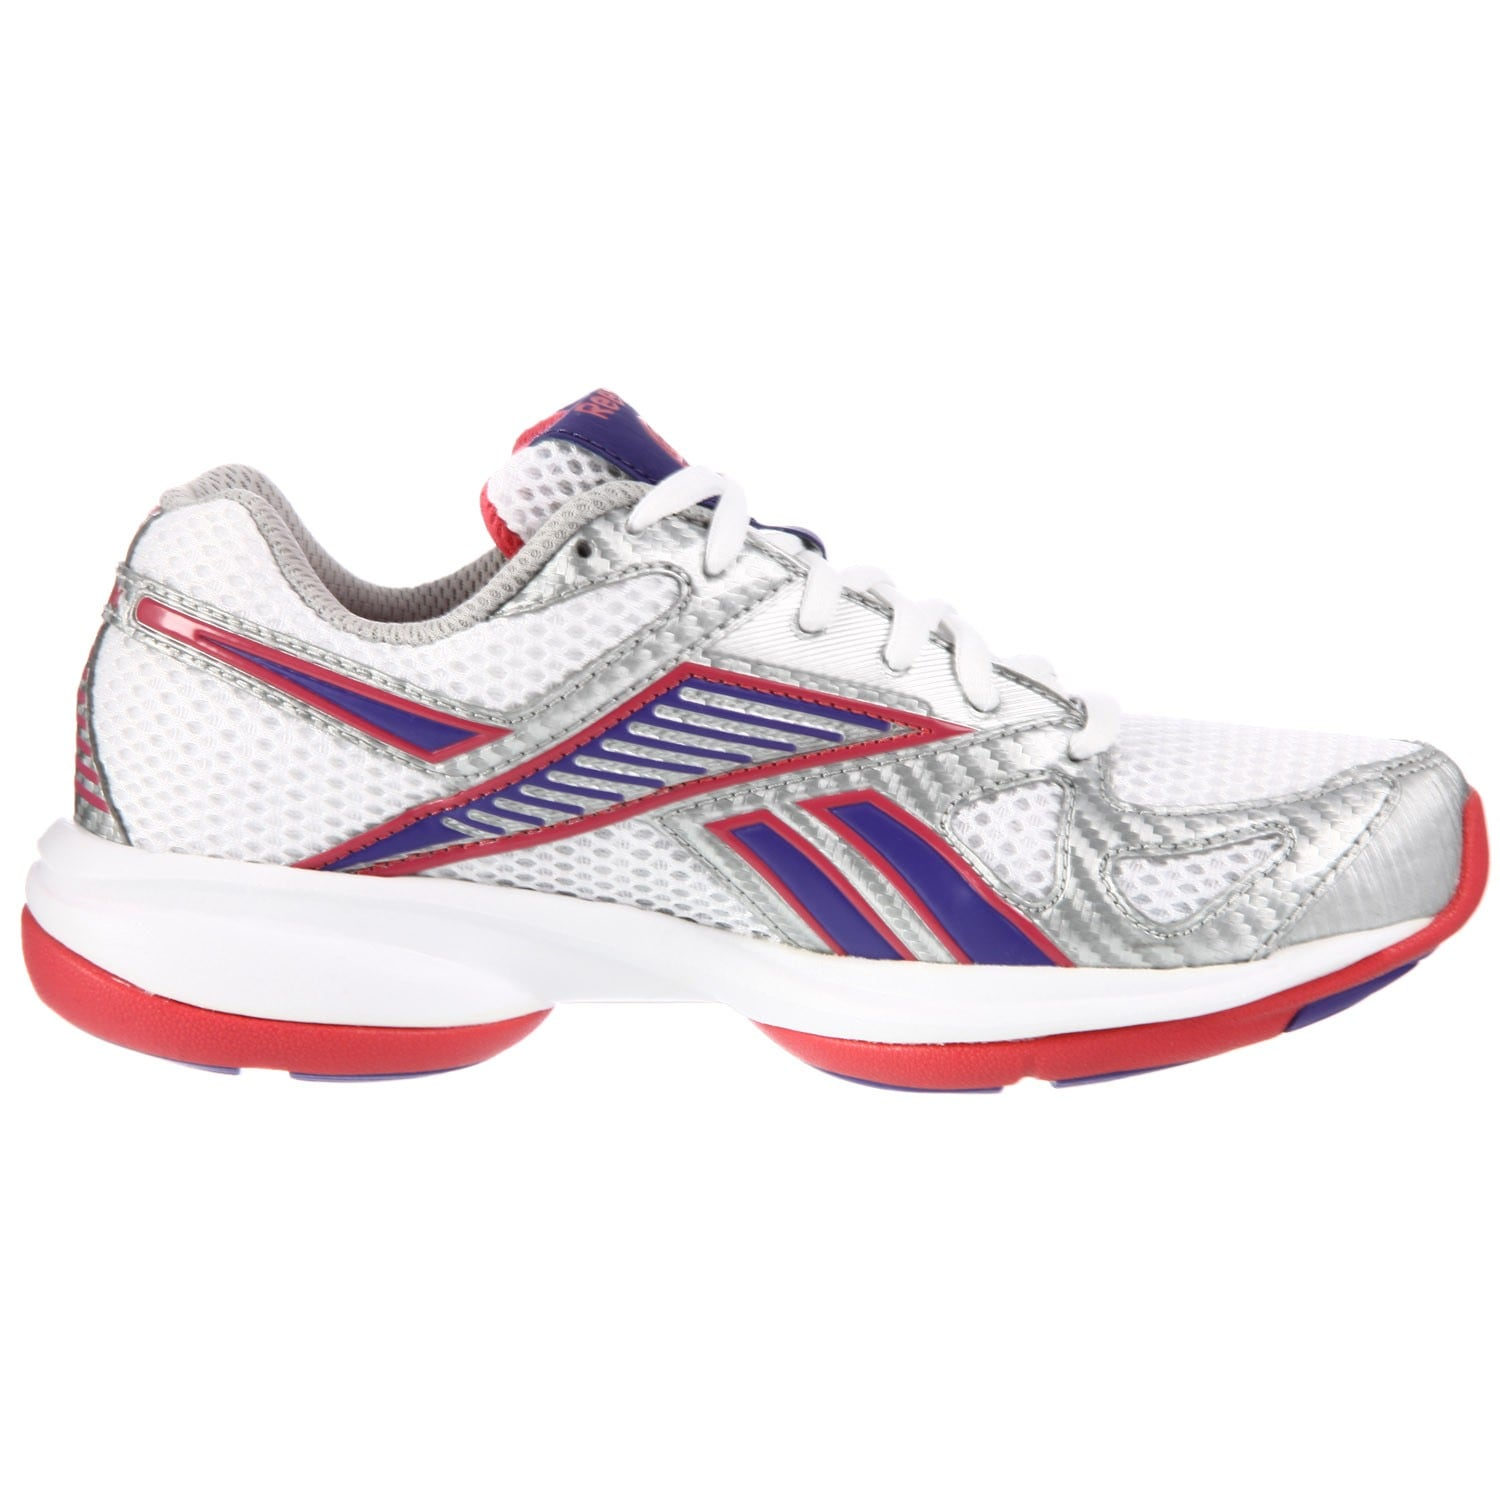 df7e8a29e63aca Shop Reebok Women s  Simplytone US  Athletic Shoes - Free Shipping On  Orders Over  45 - Overstock - 6545084